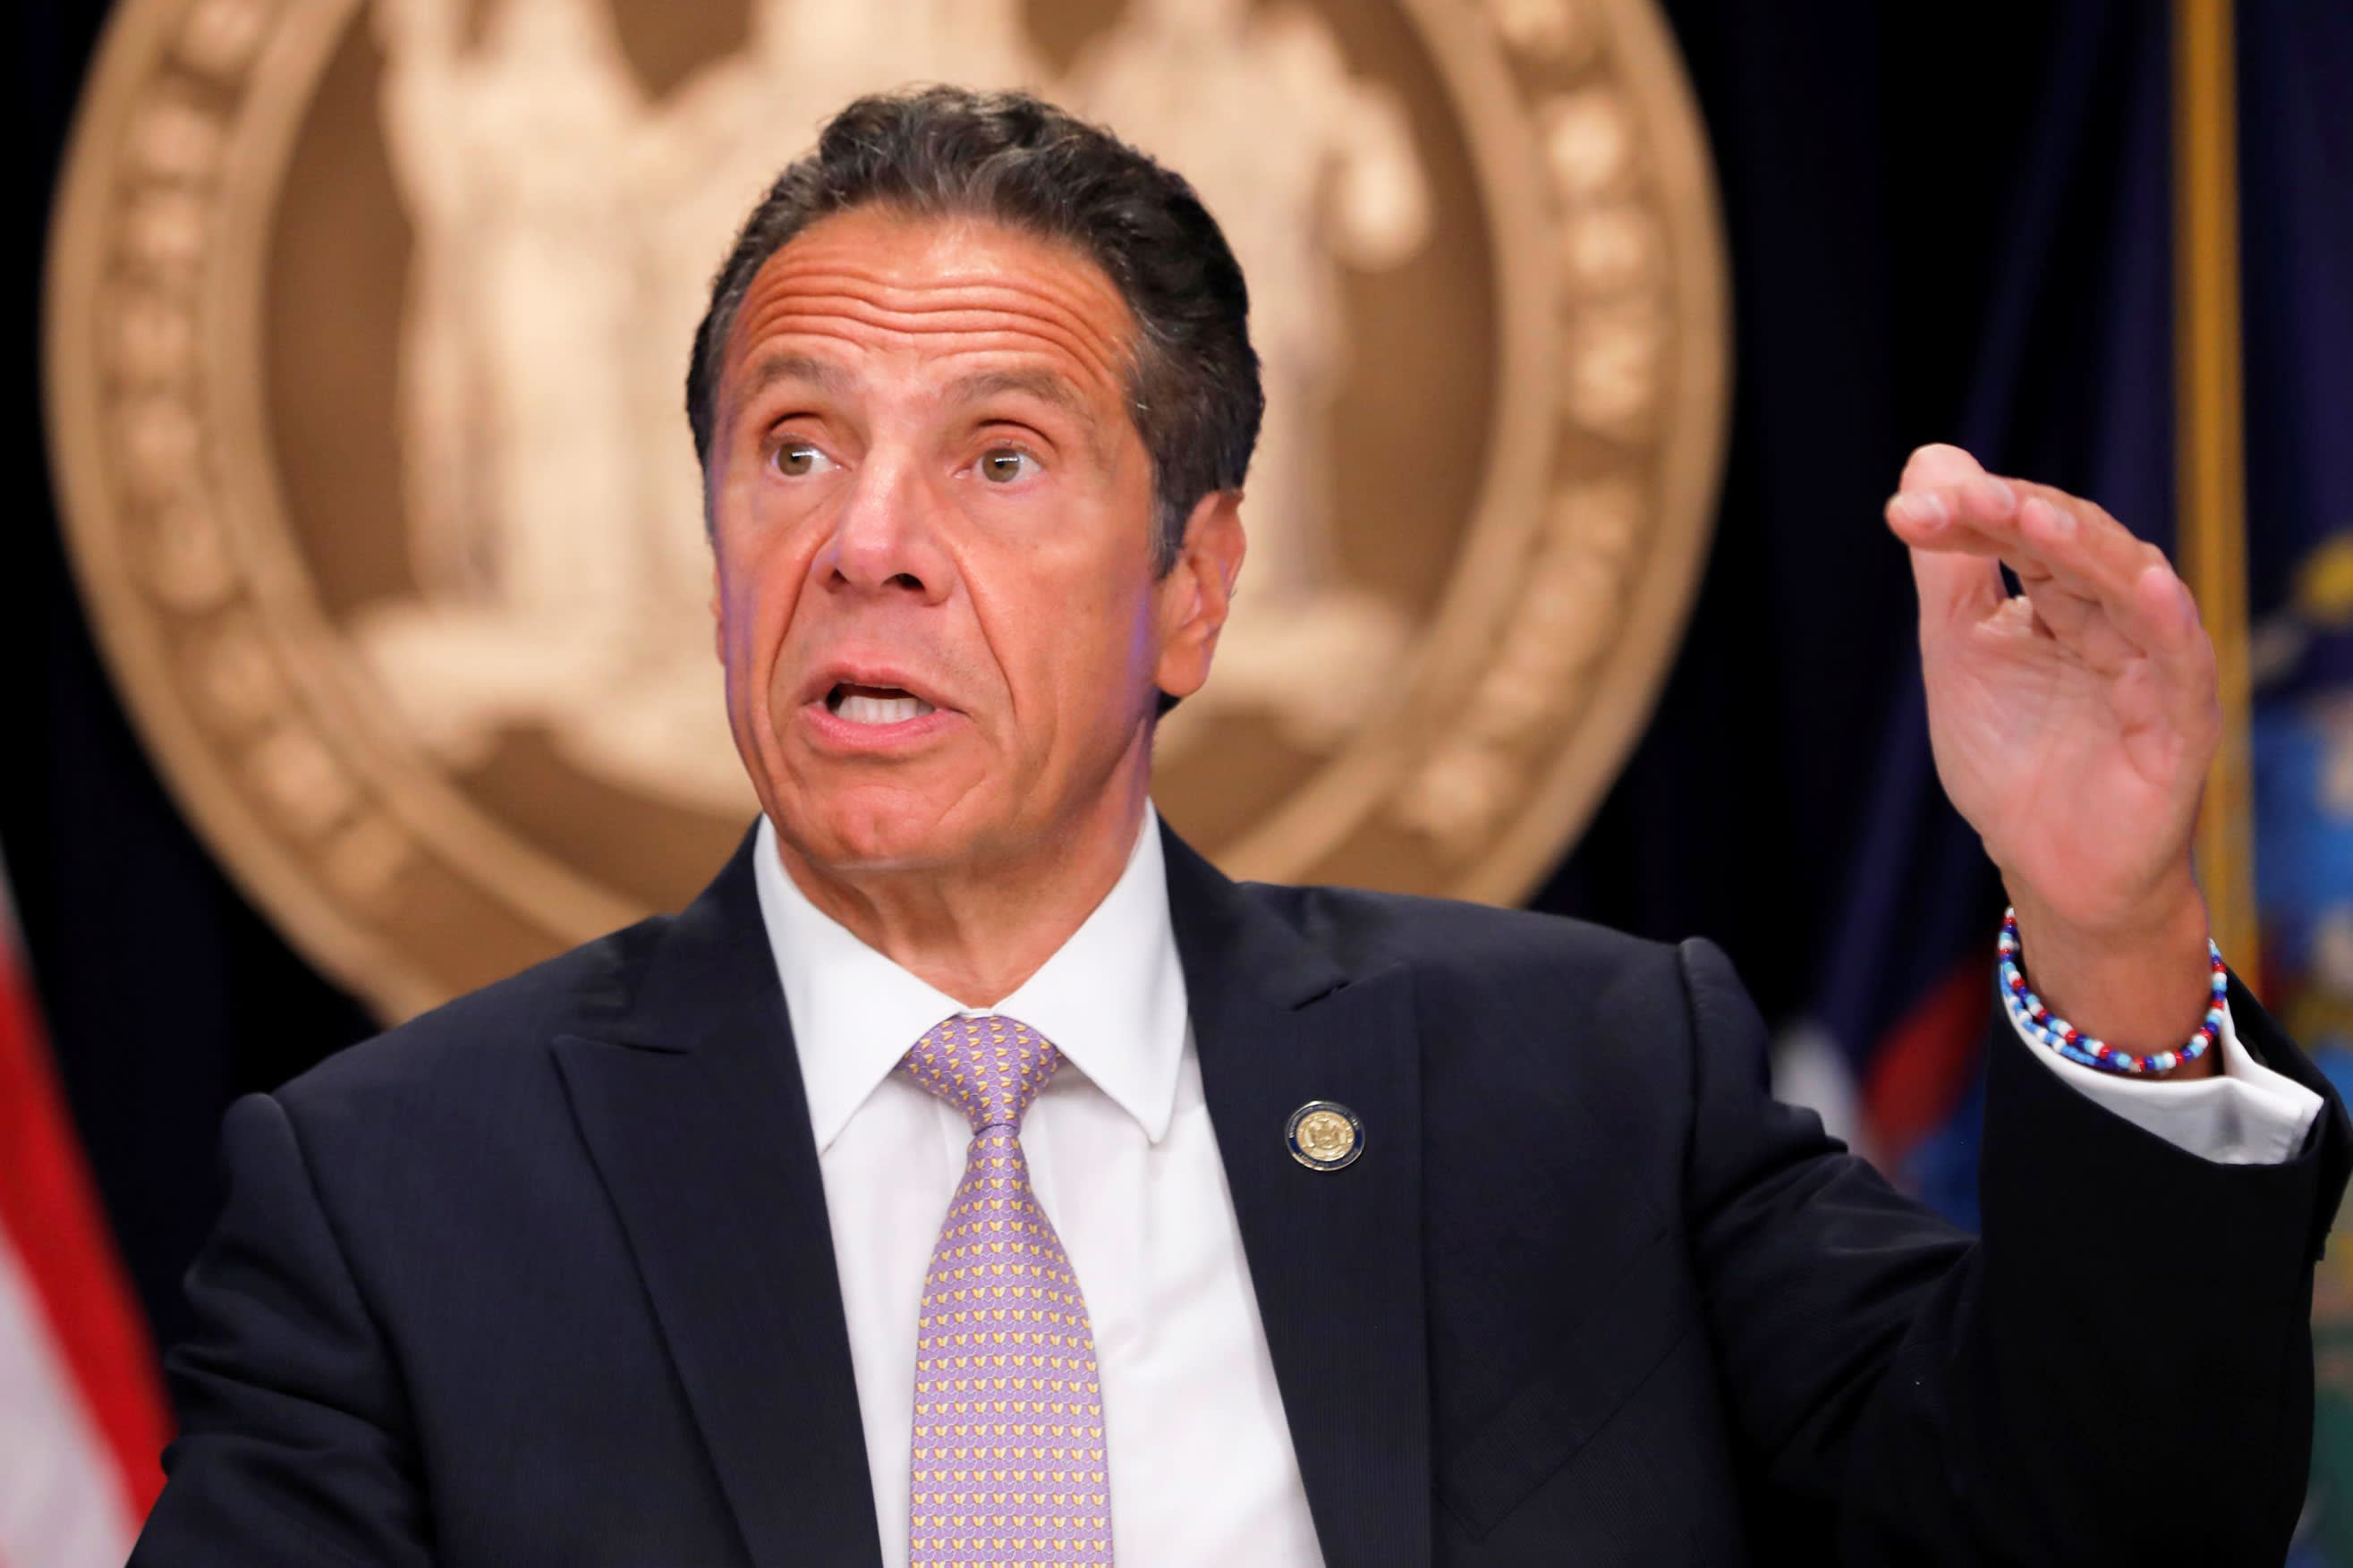 Image of article 'A majority of U.S. states are now on New York's Covid travel restriction list, Cuomo says'